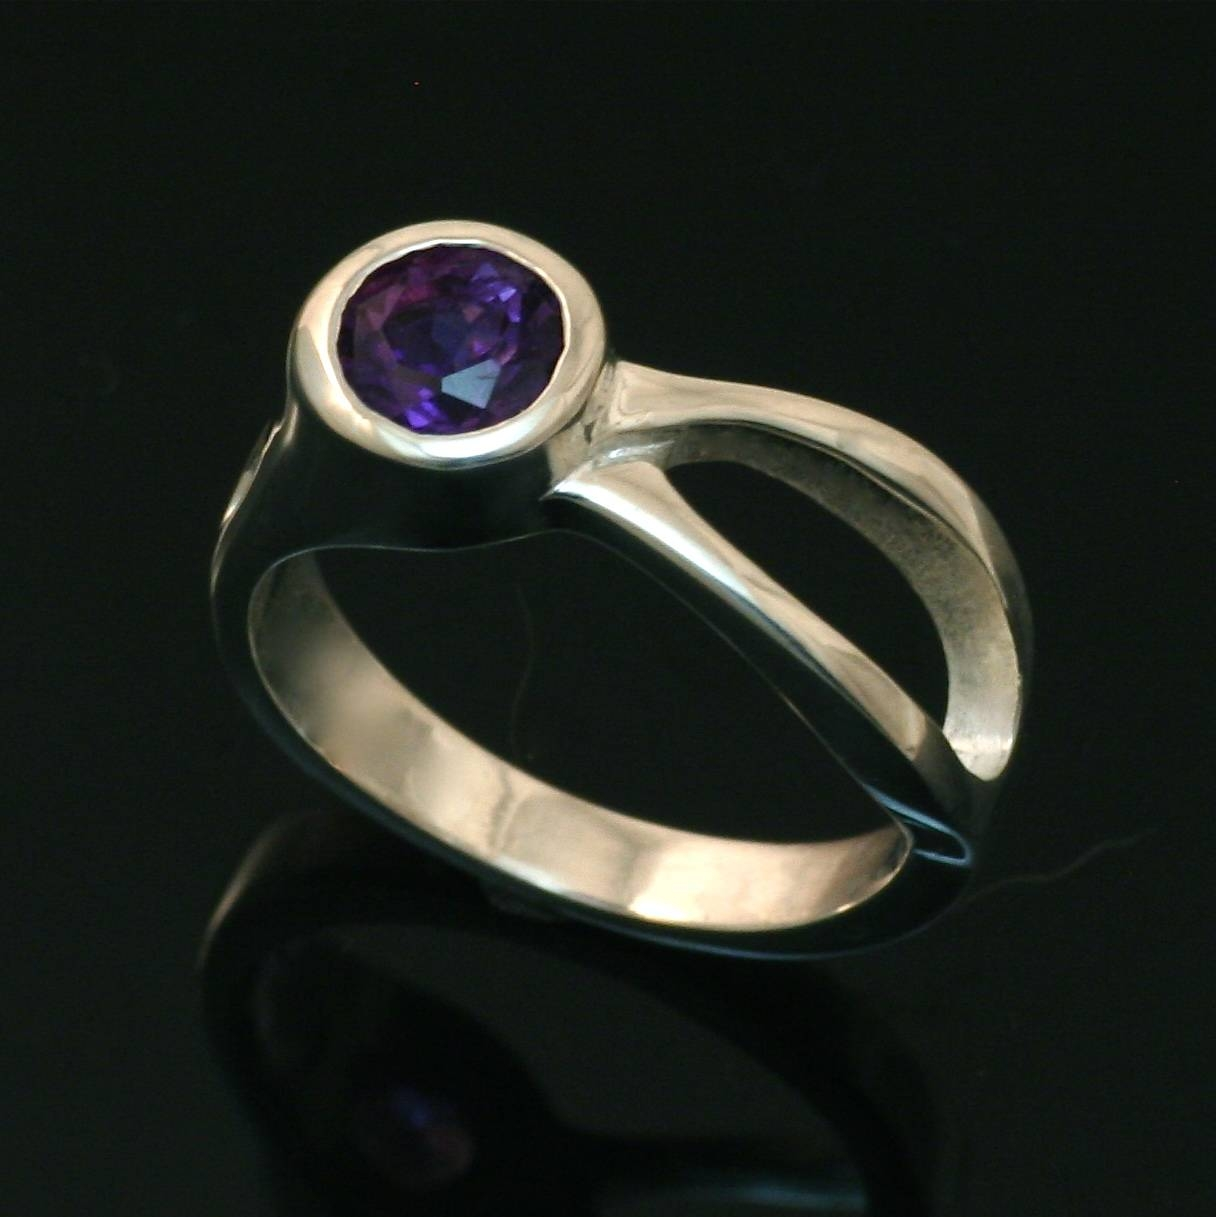 Two Rivers Ring Engagement Rings, Gemstone Rings, Diamond Rings Regarding New Age Engagement Rings (View 15 of 15)